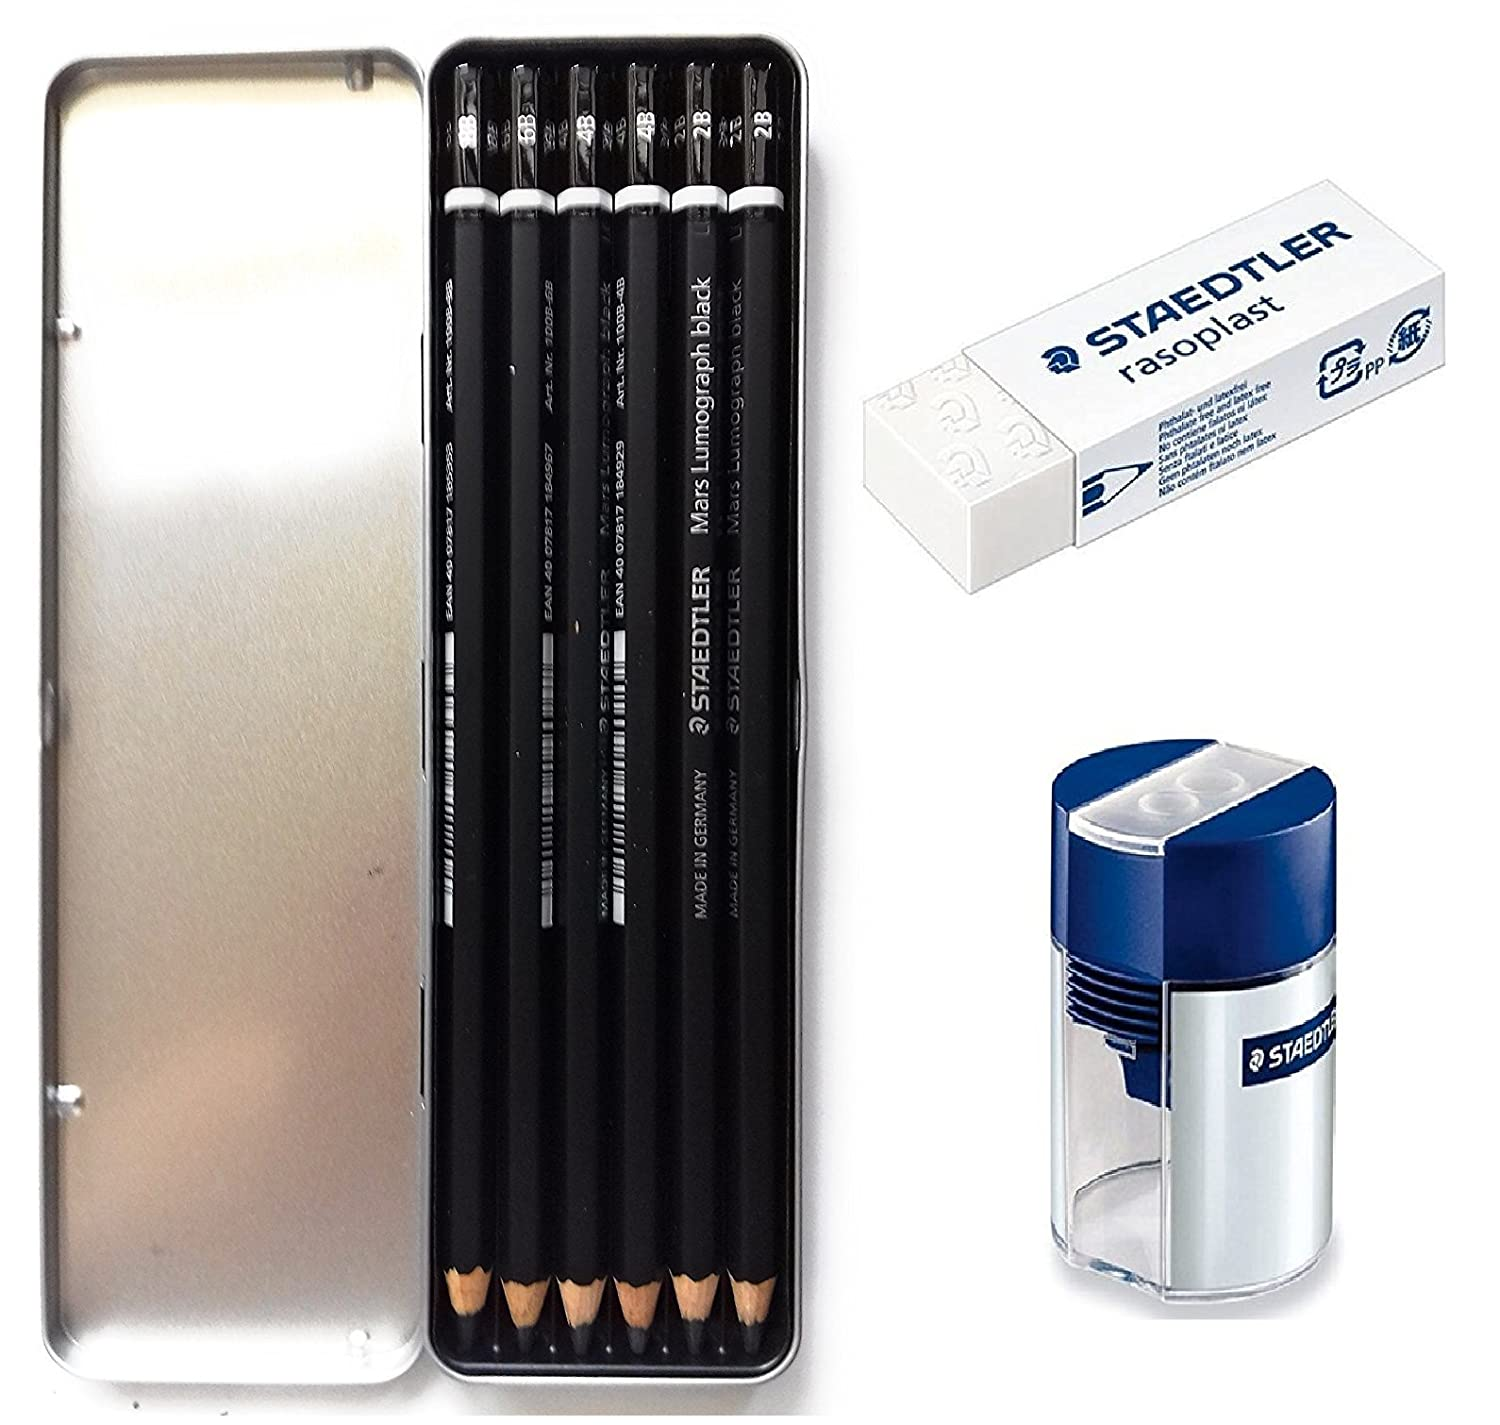 Staedtler Mars Lumograph Black Artist Wooden Lead Pencil - Box of 6 (8B 6B 4B 4B 2B 2B) in Metal Box- With Tub 2-Hole Sharpener and Free Eraser STAEDTLER/Yosogo 100B-G6